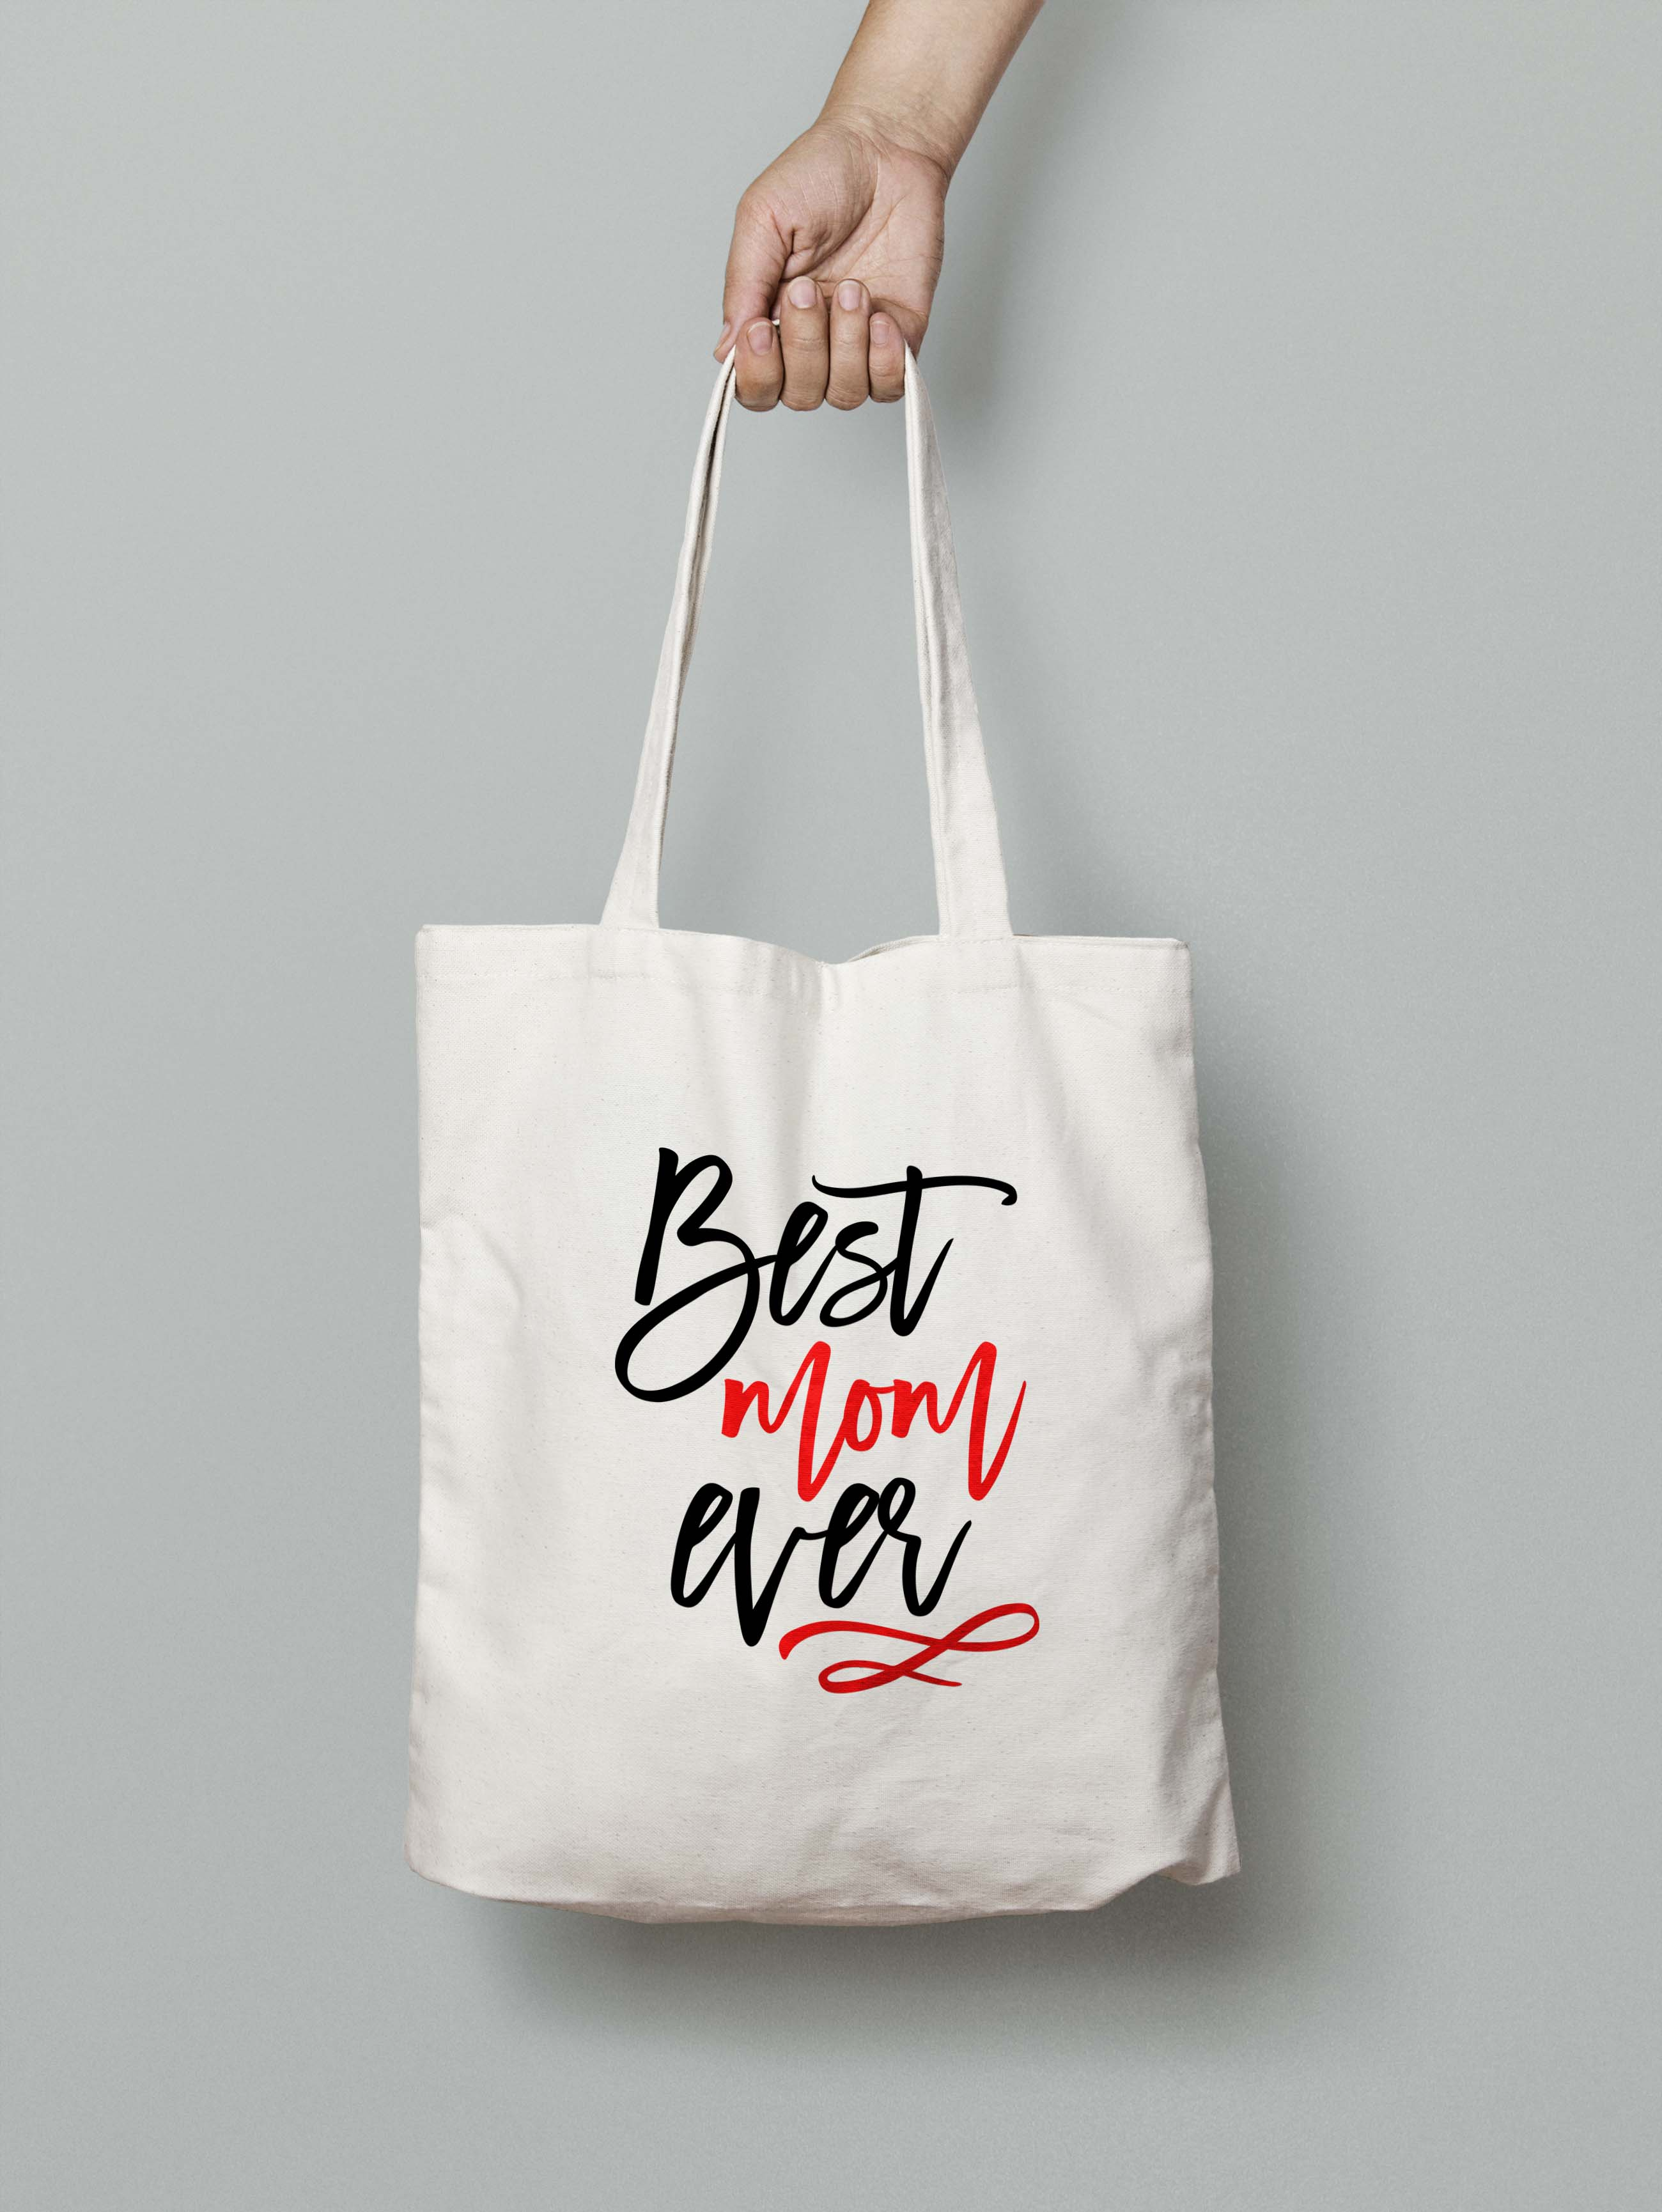 Best Mom ever SVG EPS PNG DXF example image 2